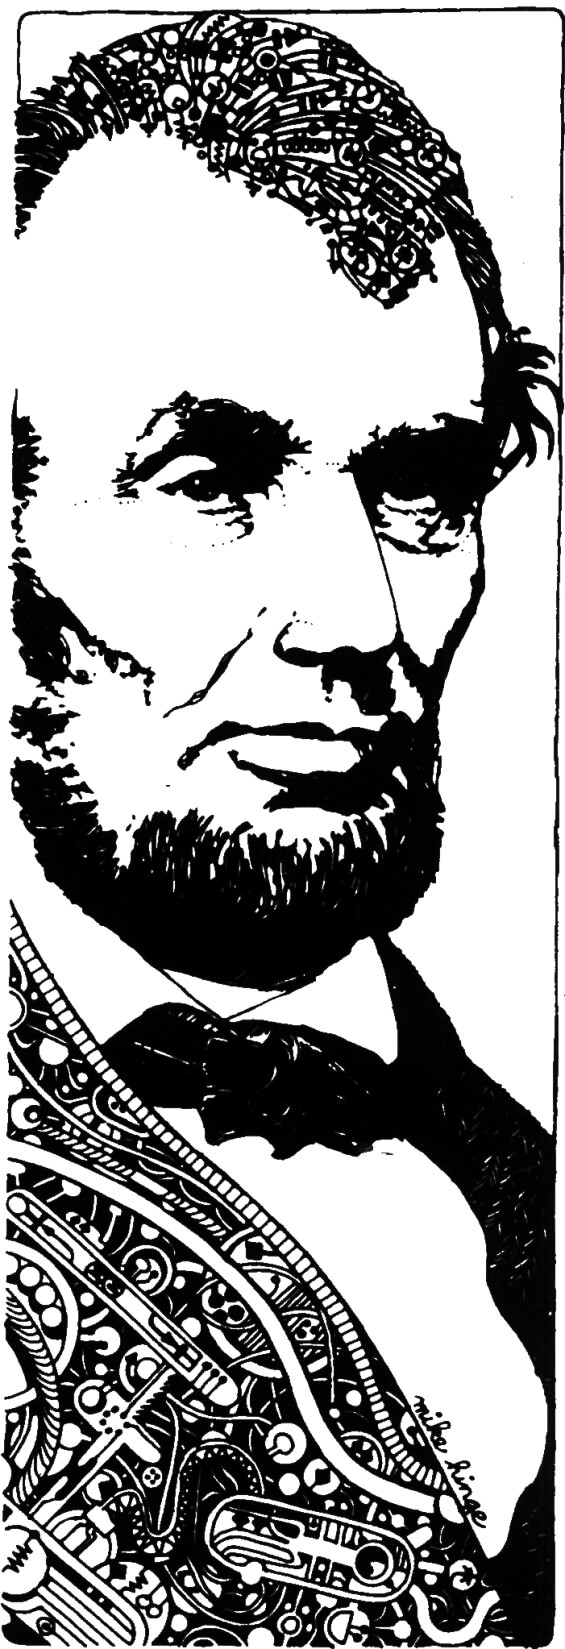 A. Lincoln, Simulacrum by Philip K. Dick - illustration by Michael Hinge